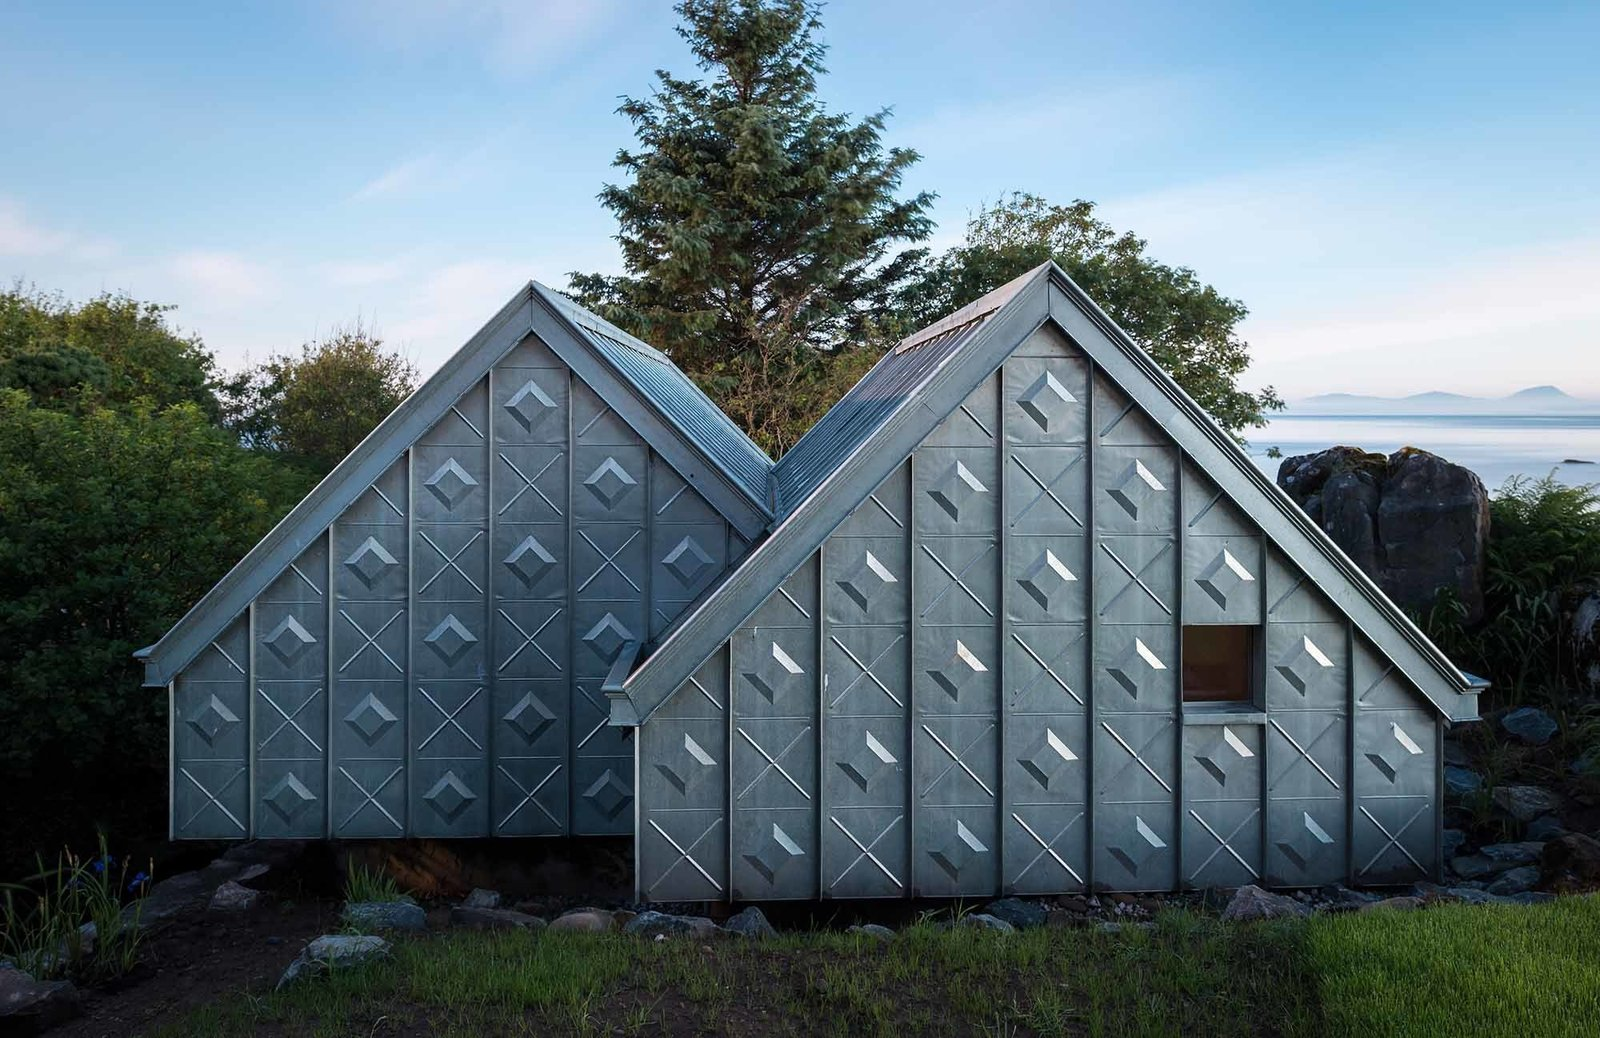 """The studio is located in the natural context of the Scottish coast, with the island of Jura in the distance. A significant design challenge, according to Blake, was """"building something quite refined in an extreme and remote environment."""" To overcome this logistical obstacle, much of the material was prefabricated offsite and transported to the building location. At the facade, elemental zinc is elevated from raw material to art piece by the unique cladding pattern. The custom embossed standing seam zinc system was designed in collaboration with VM Zinc, and fitted by HLMetals. Tagged: Exterior, Metal Roof Material, House, and Metal Siding Material.  Midden Studio by Sarah Akkoush"""